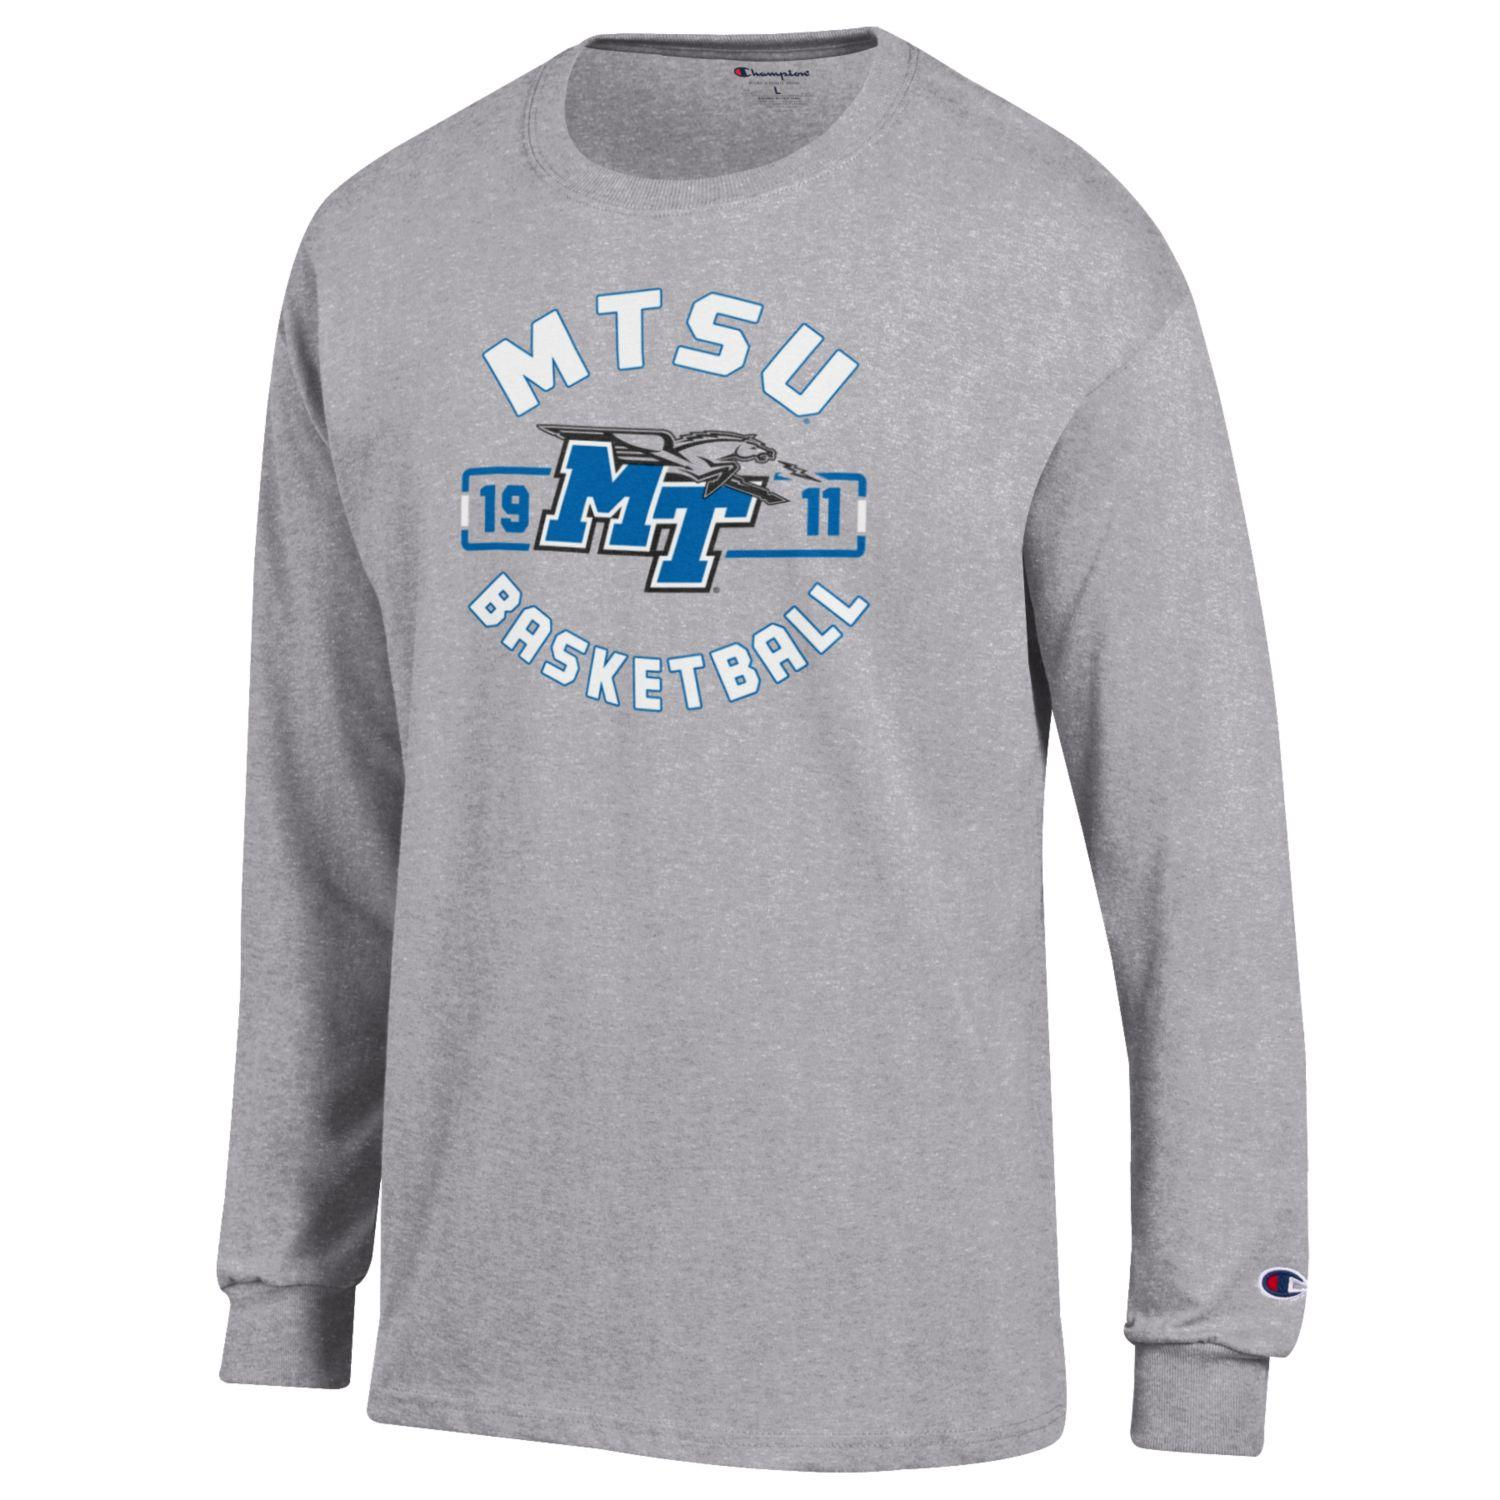 MTSU 1911 Basketball Long Sleeve Shirt